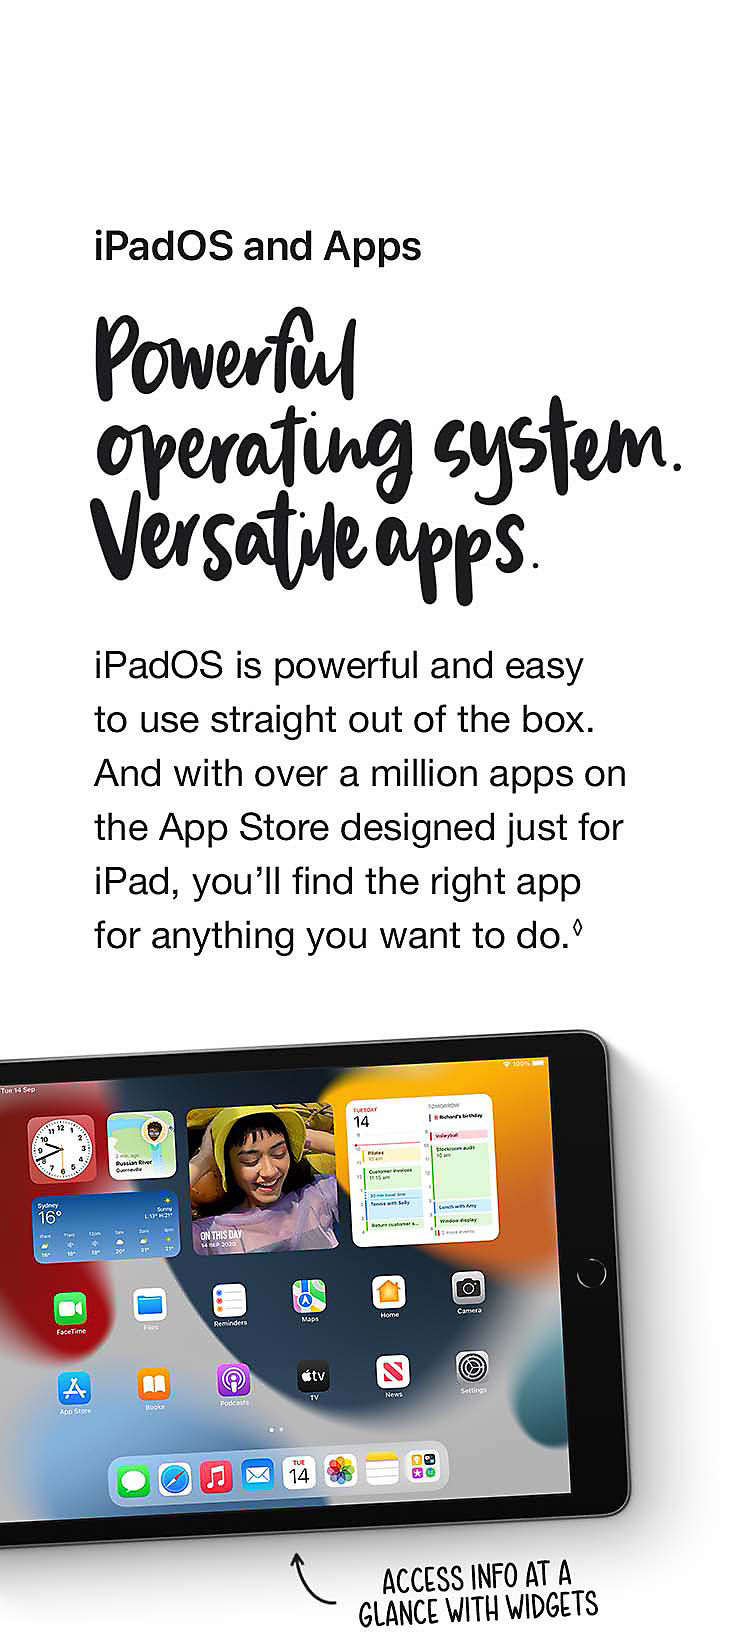 Powerful operating system. Versatile apps.